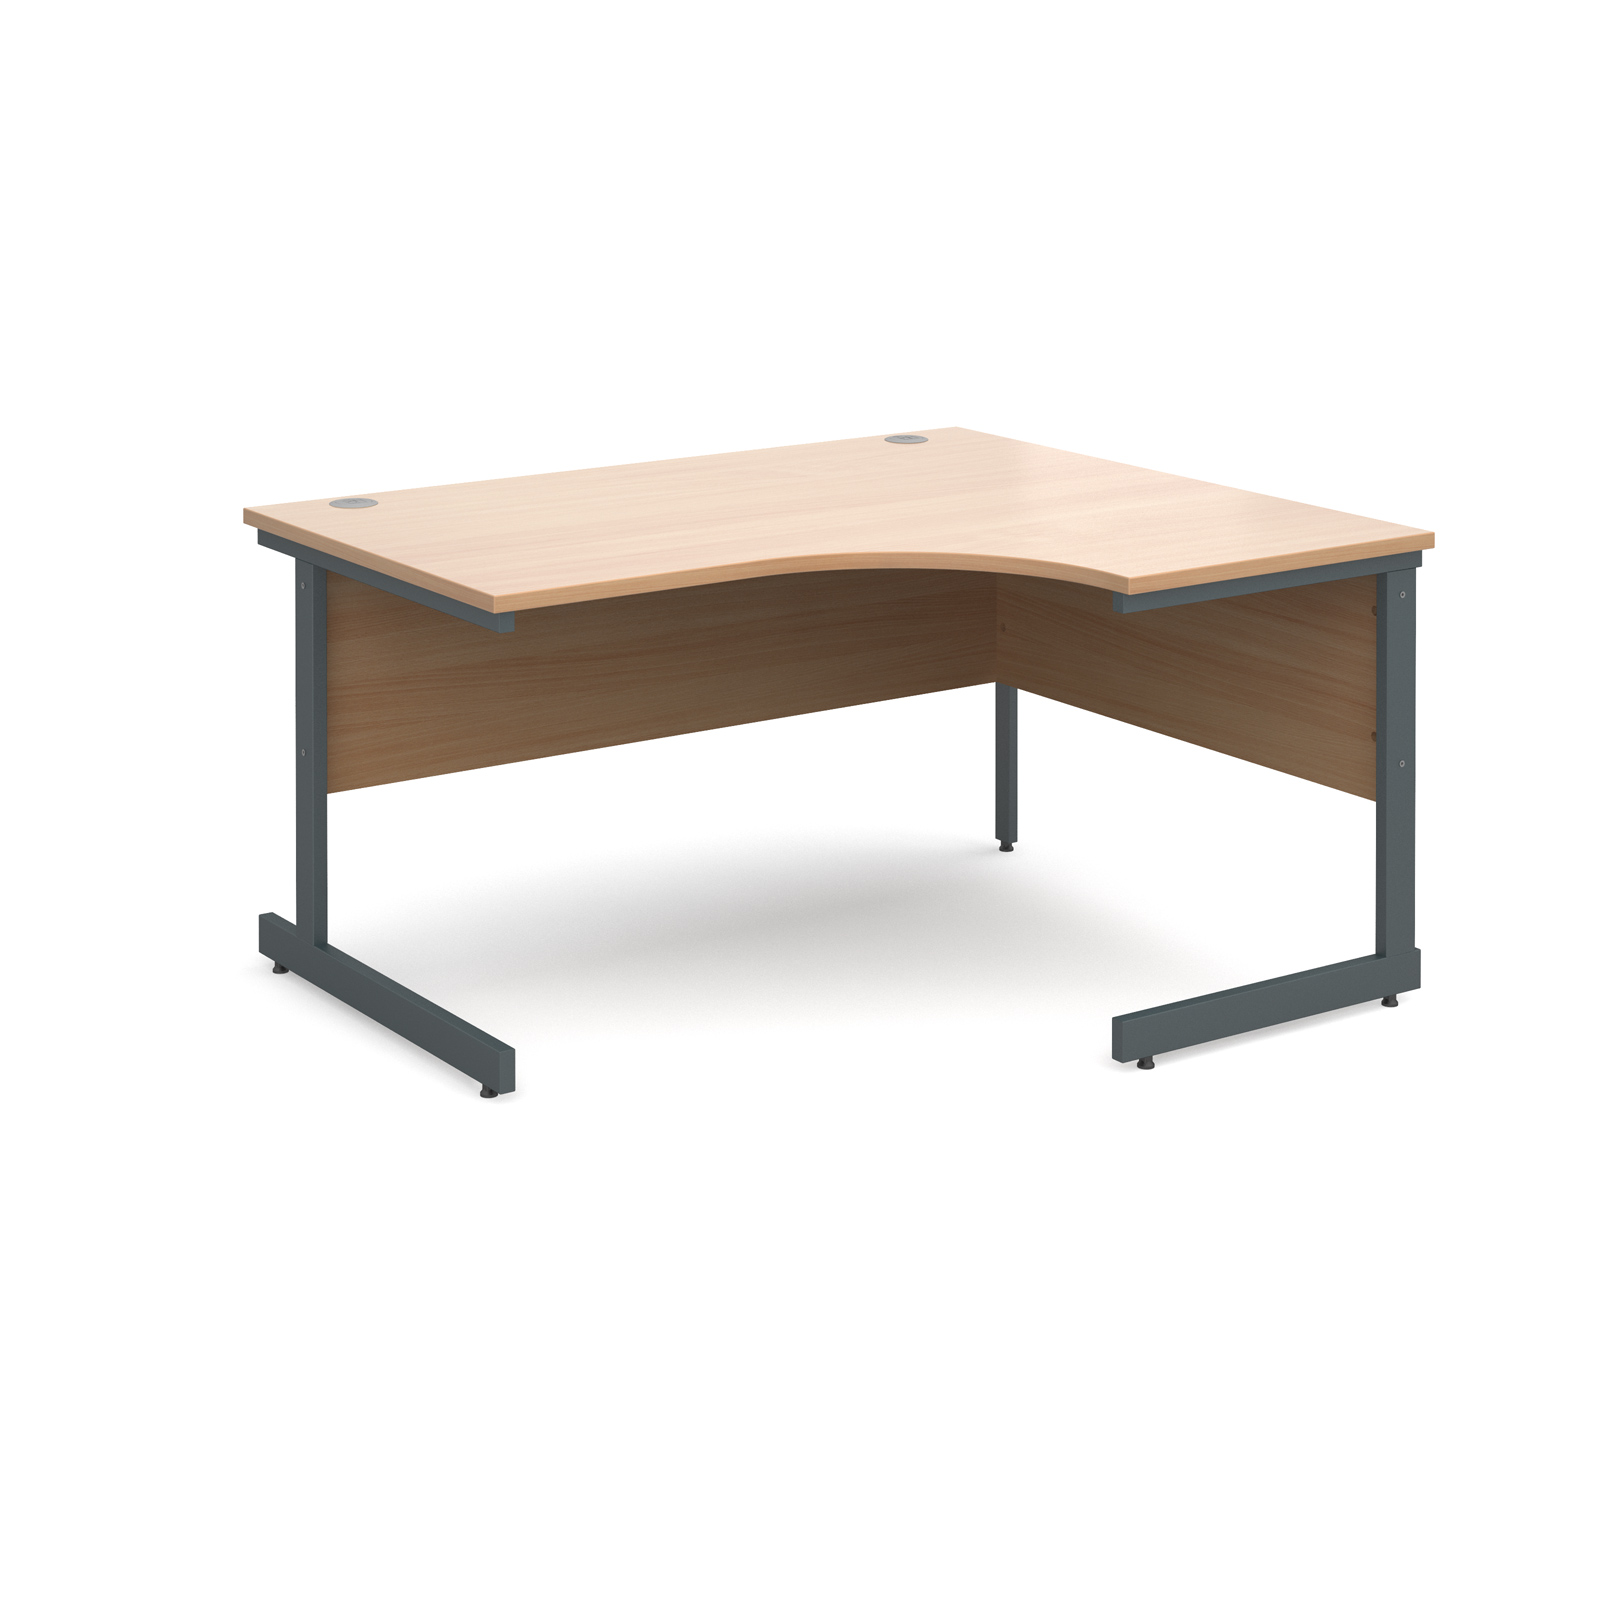 Contract 25 right hand ergonomic desk 1400mm - graphite cantilever frame, beech top